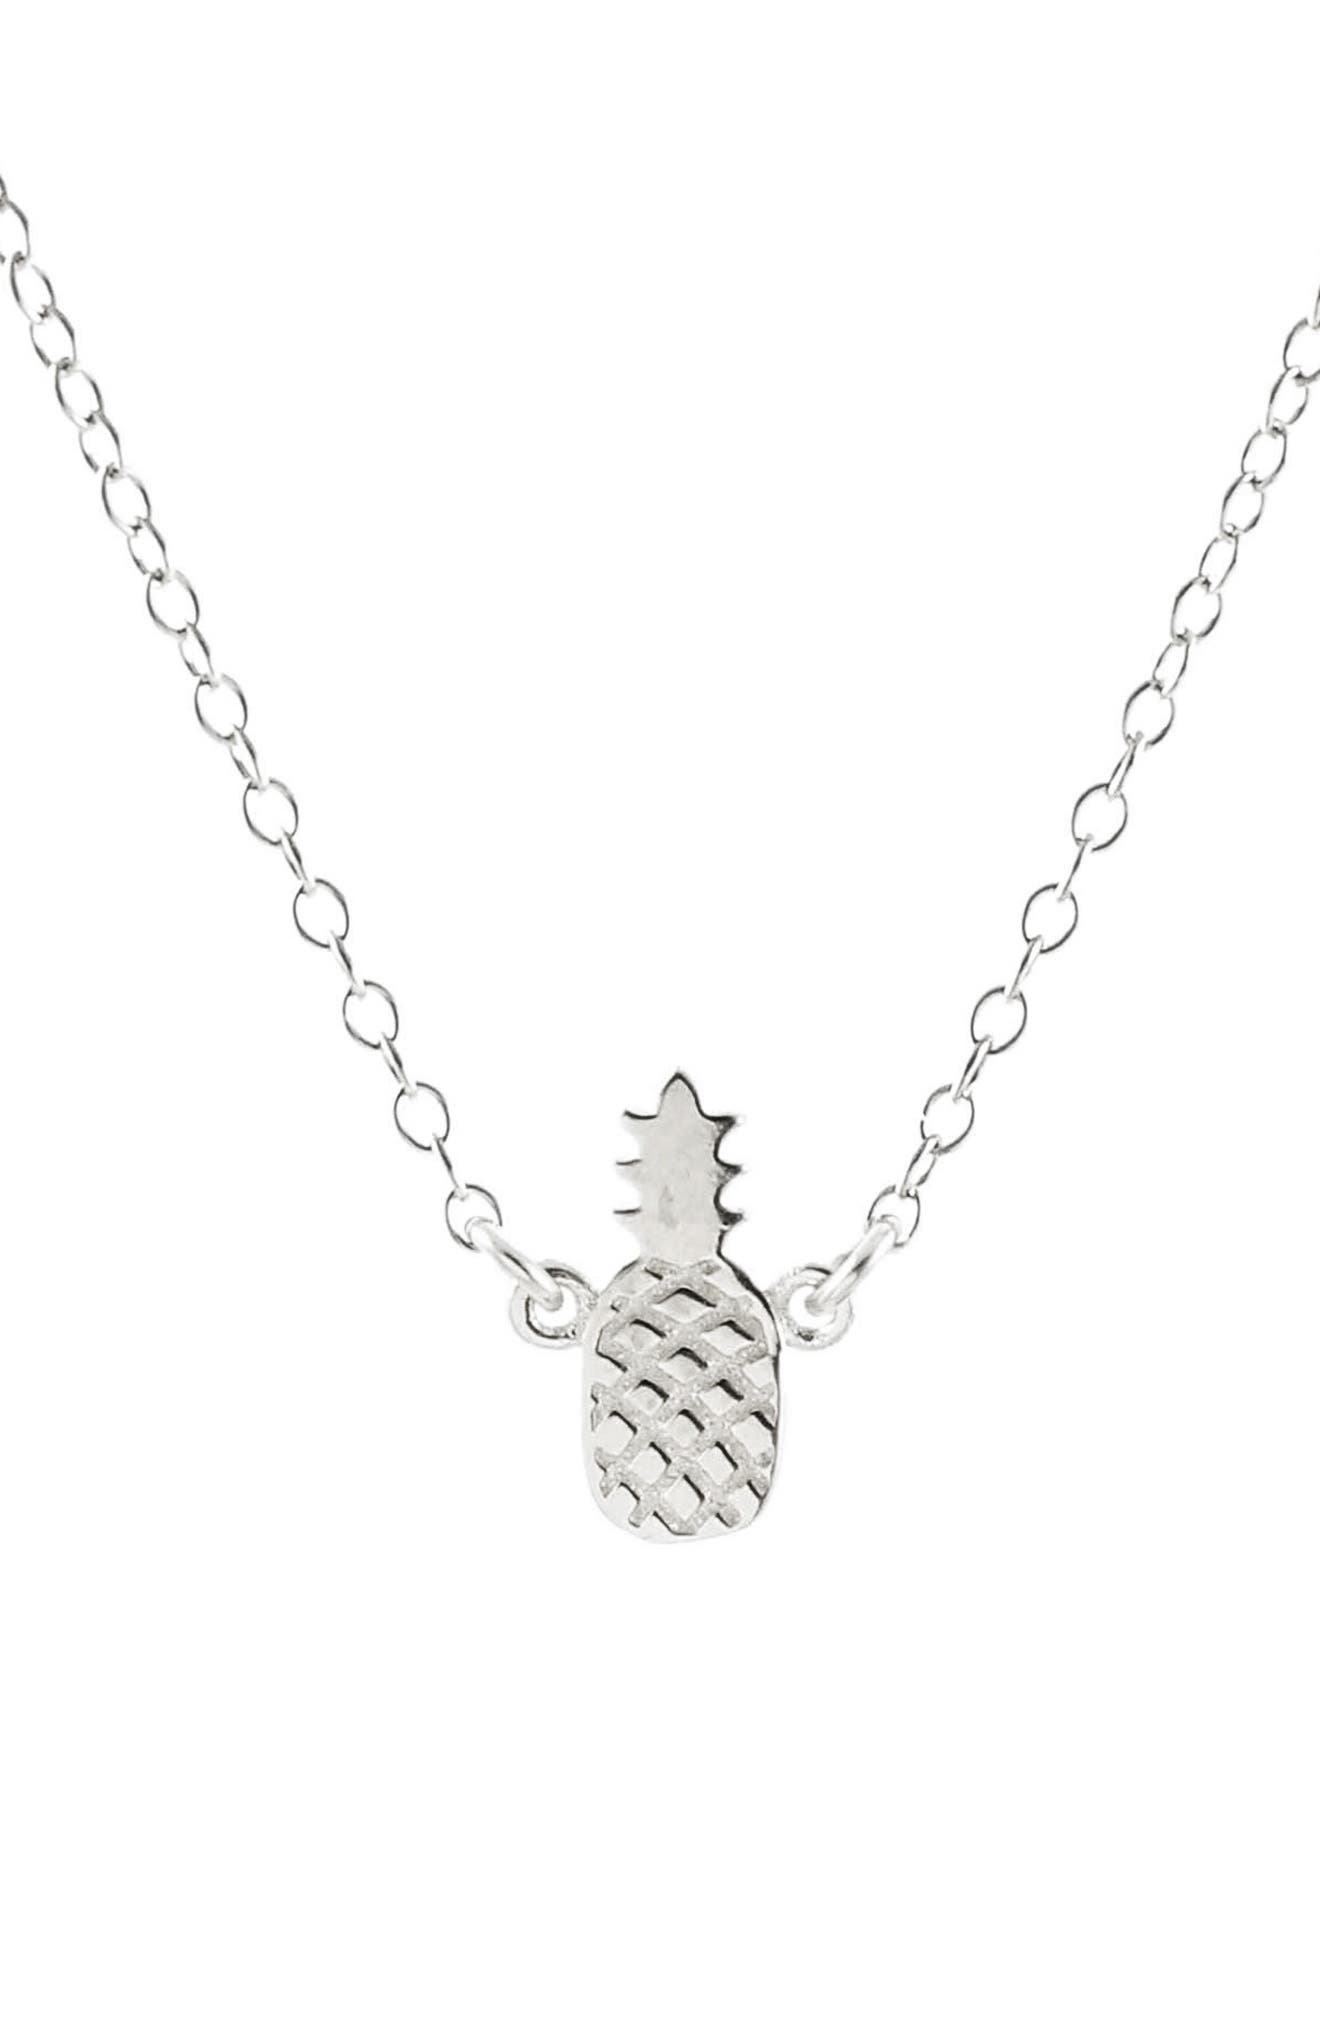 Alternate Image 1 Selected - Kris Nations Pineapple Charm Necklace